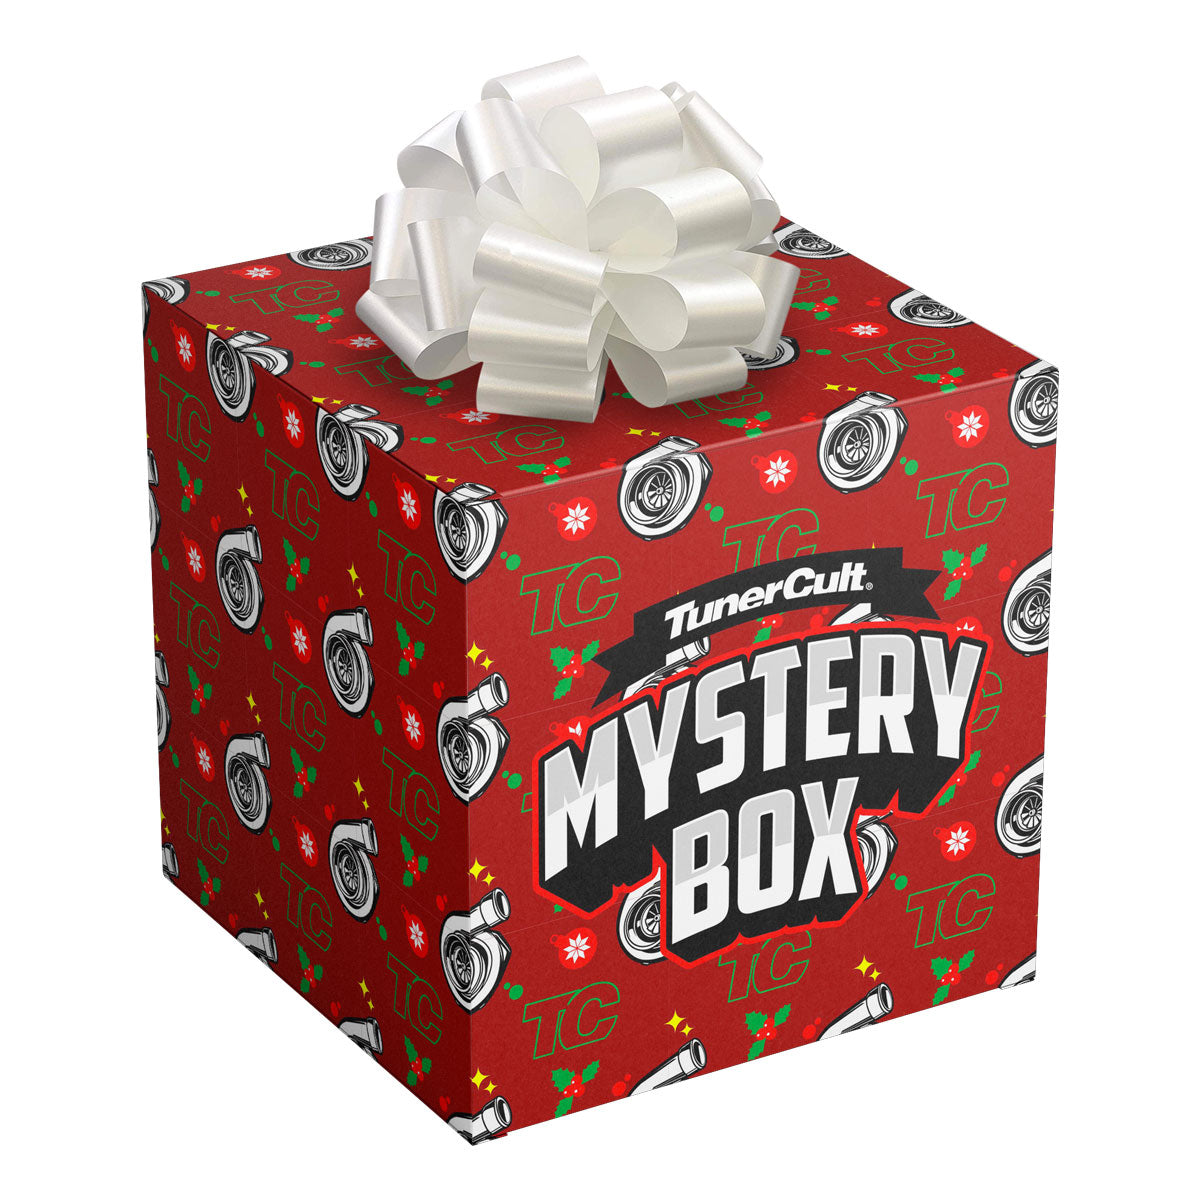 *SPECIAL Mystery Box (limited qty)